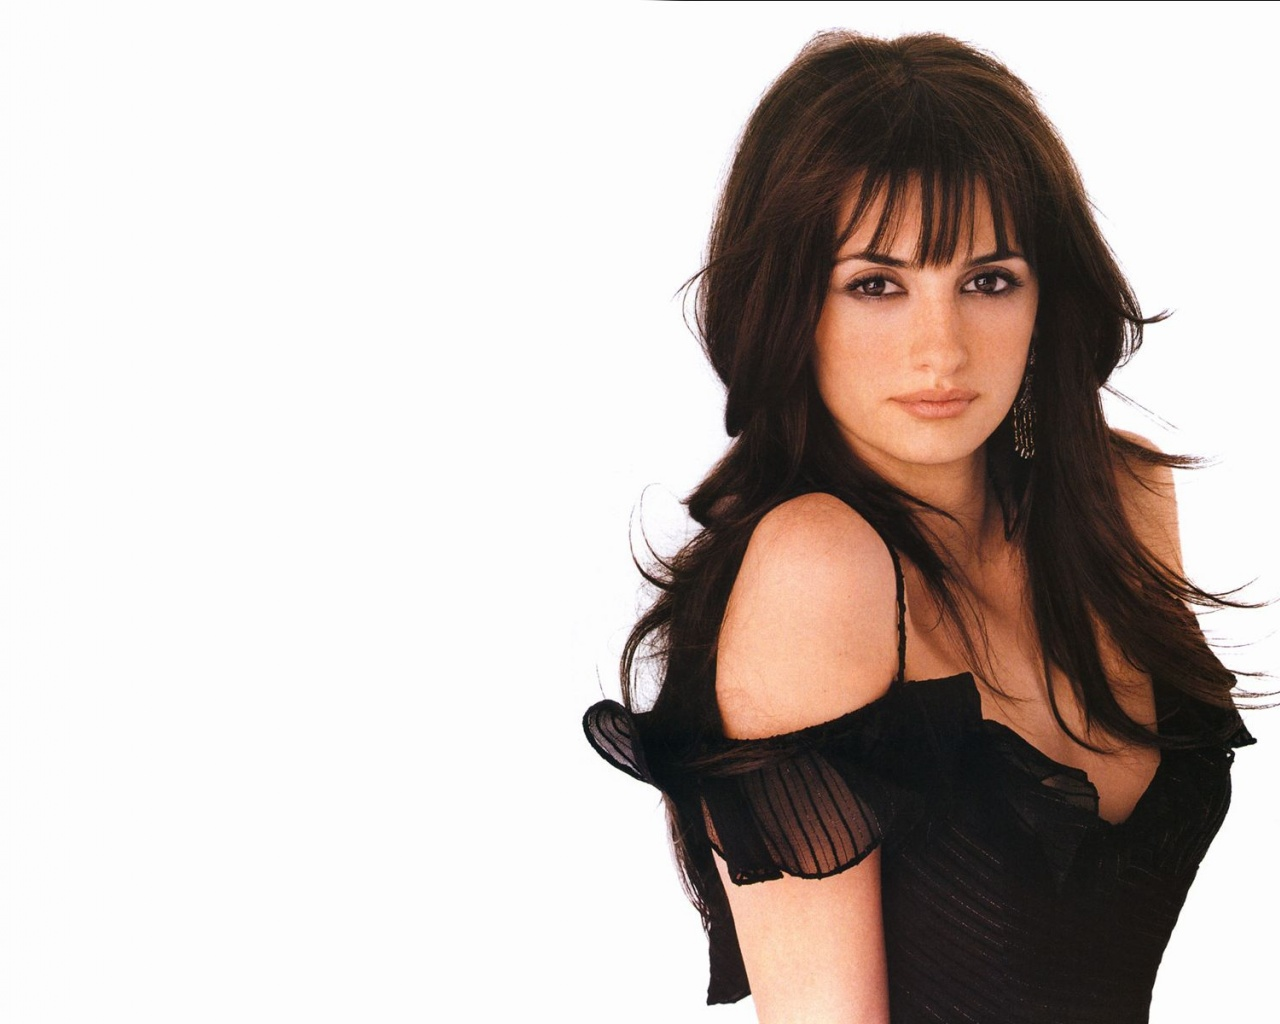 penelope-cruz_wallpapers_1487_1280x1024.jpg